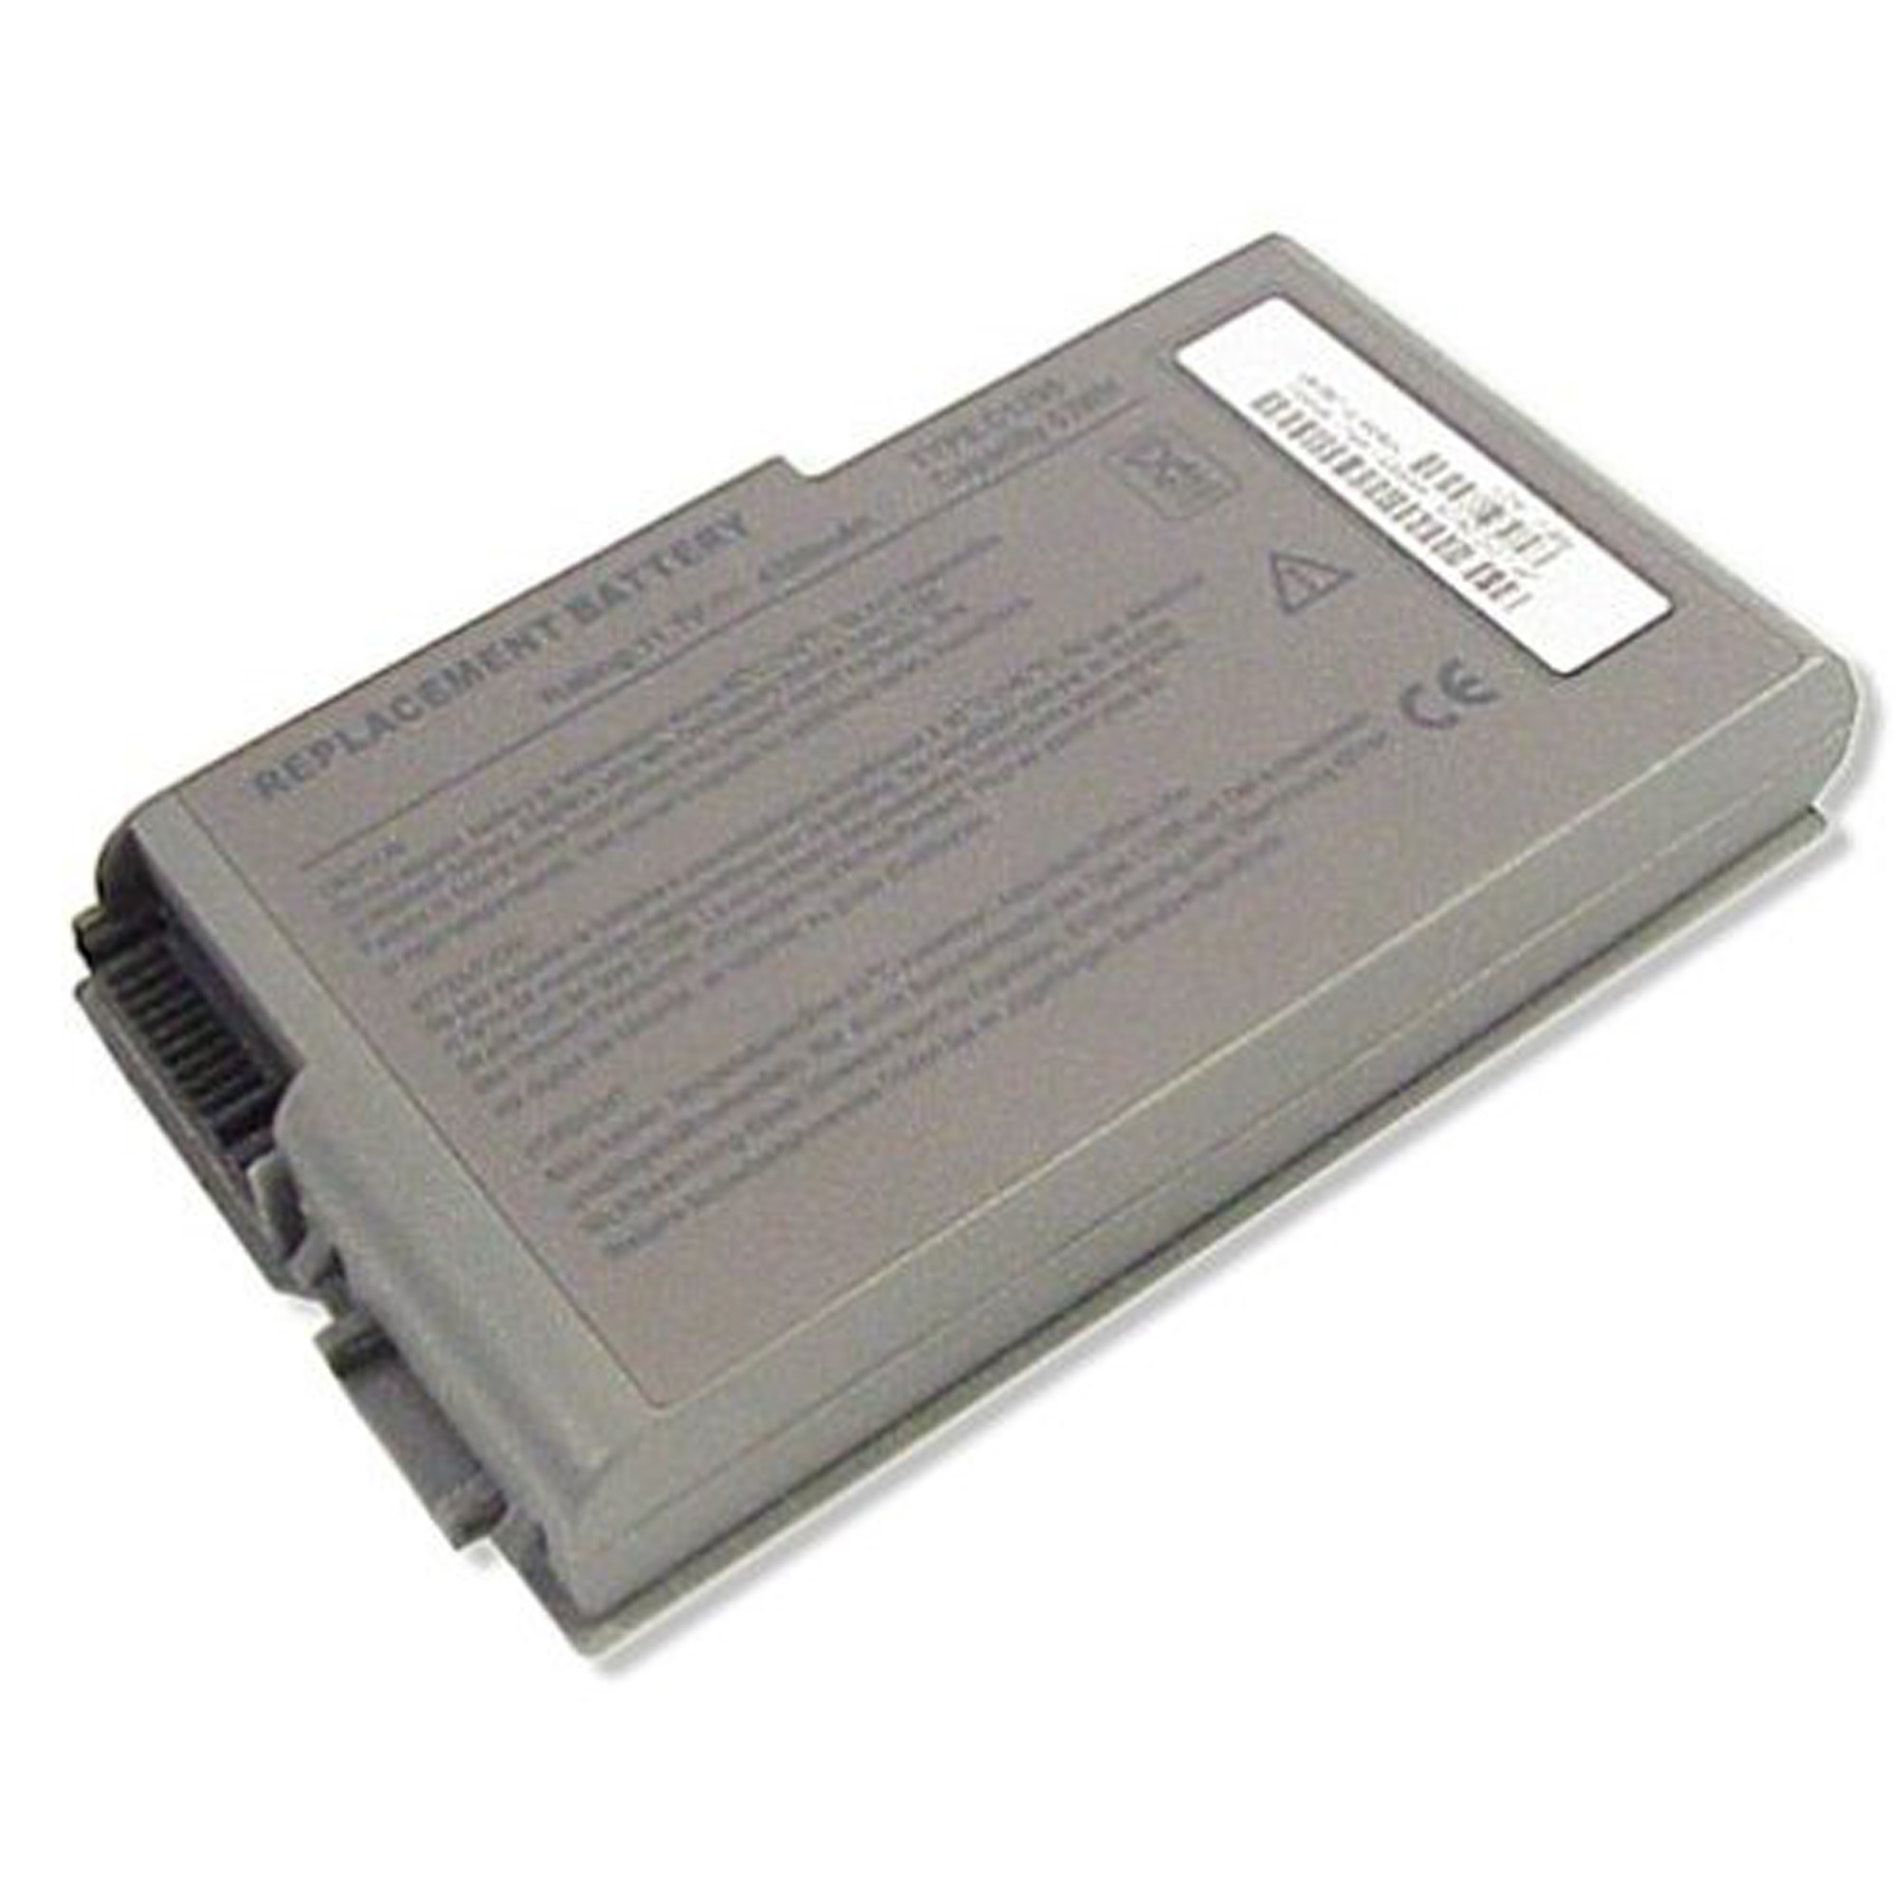 11.10v Lithium-Ion Battery                                                                                                       at mygofer.com